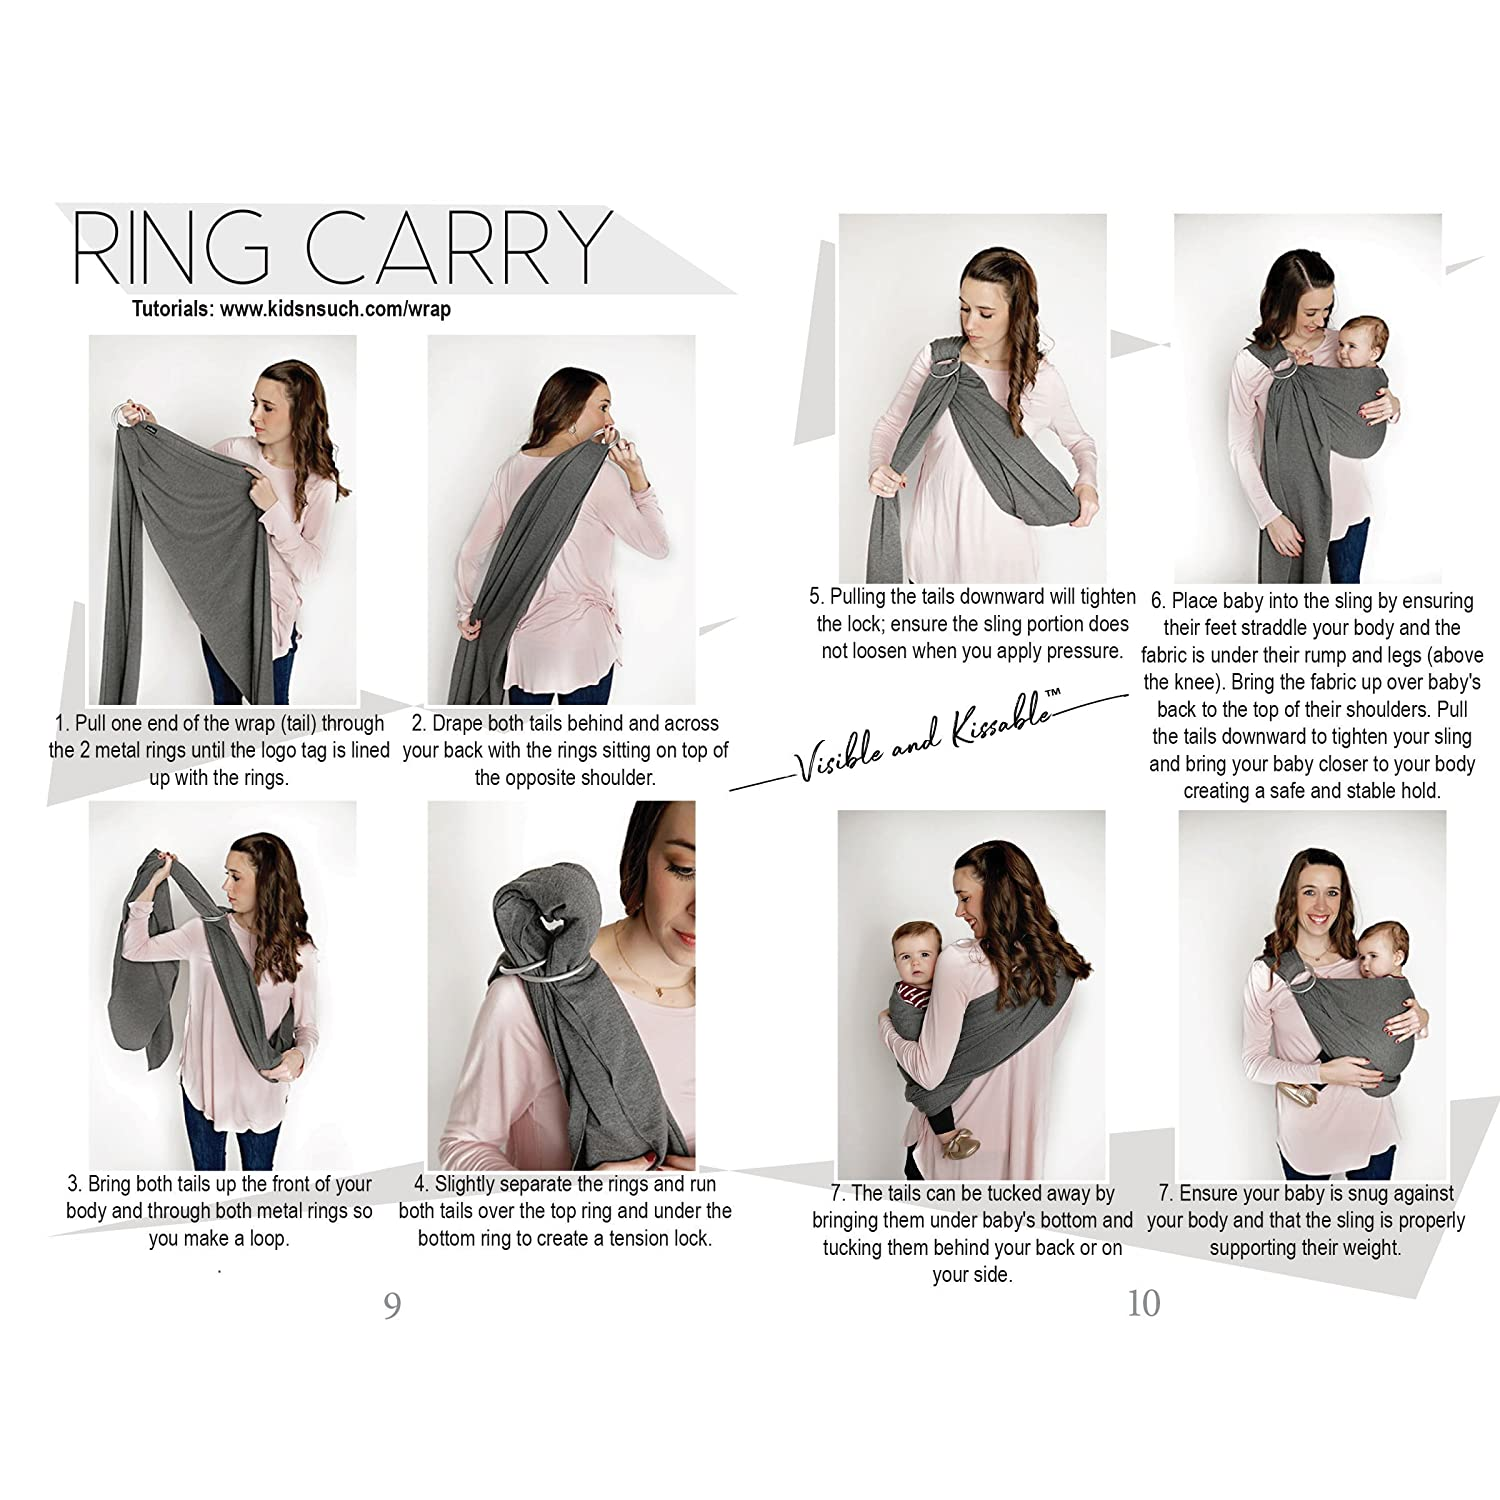 4 in 1 Baby Wrap Carrier and Ring Sling by Kids N' Such | Charcoal Gray Cotton | Use as a Postpartum Belt and Nursing Cover with Free Carrying Pouch | Best Baby Shower Gift for Boys or Girls Kids N' Such WRAP-CHARCOAL